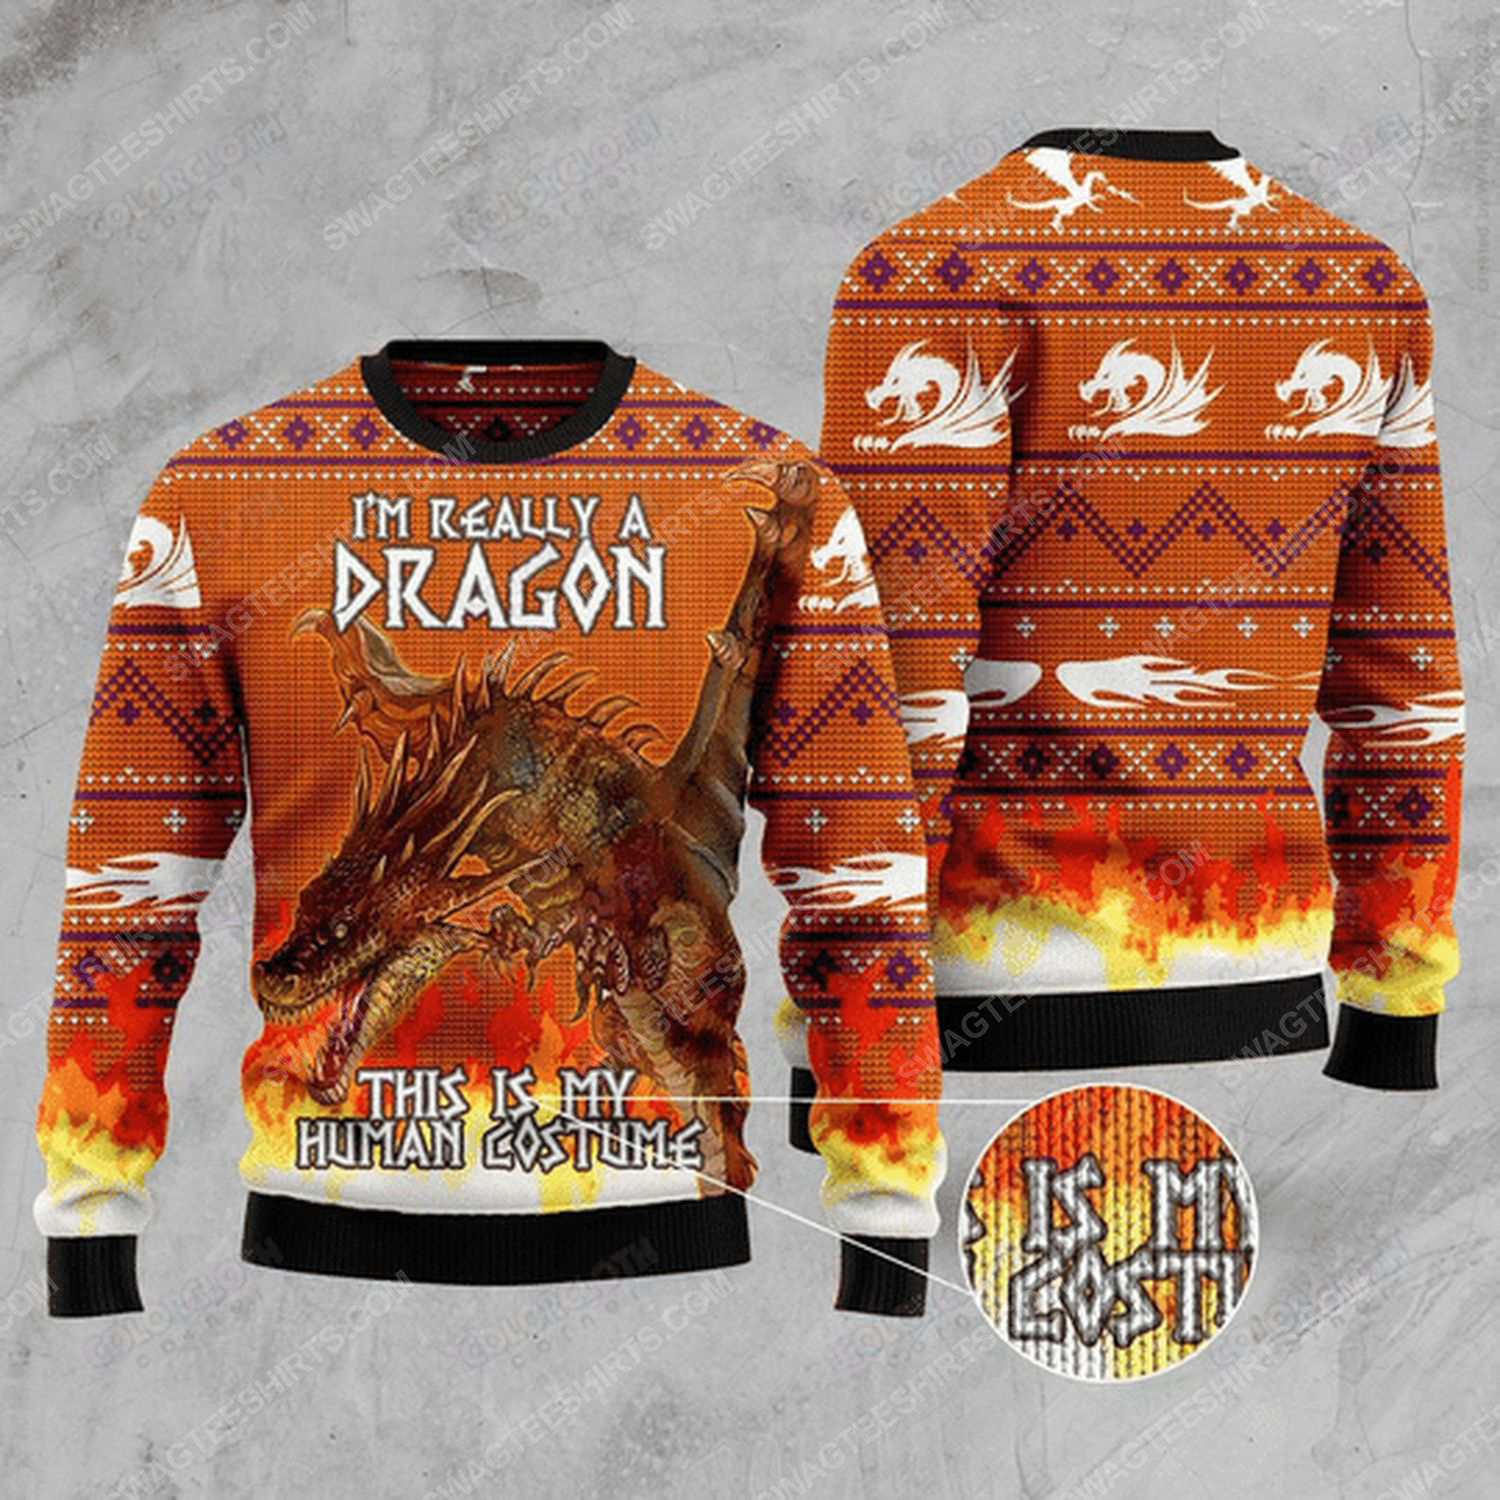 I'm really a dragon this is my human costume ugly christmas sweater